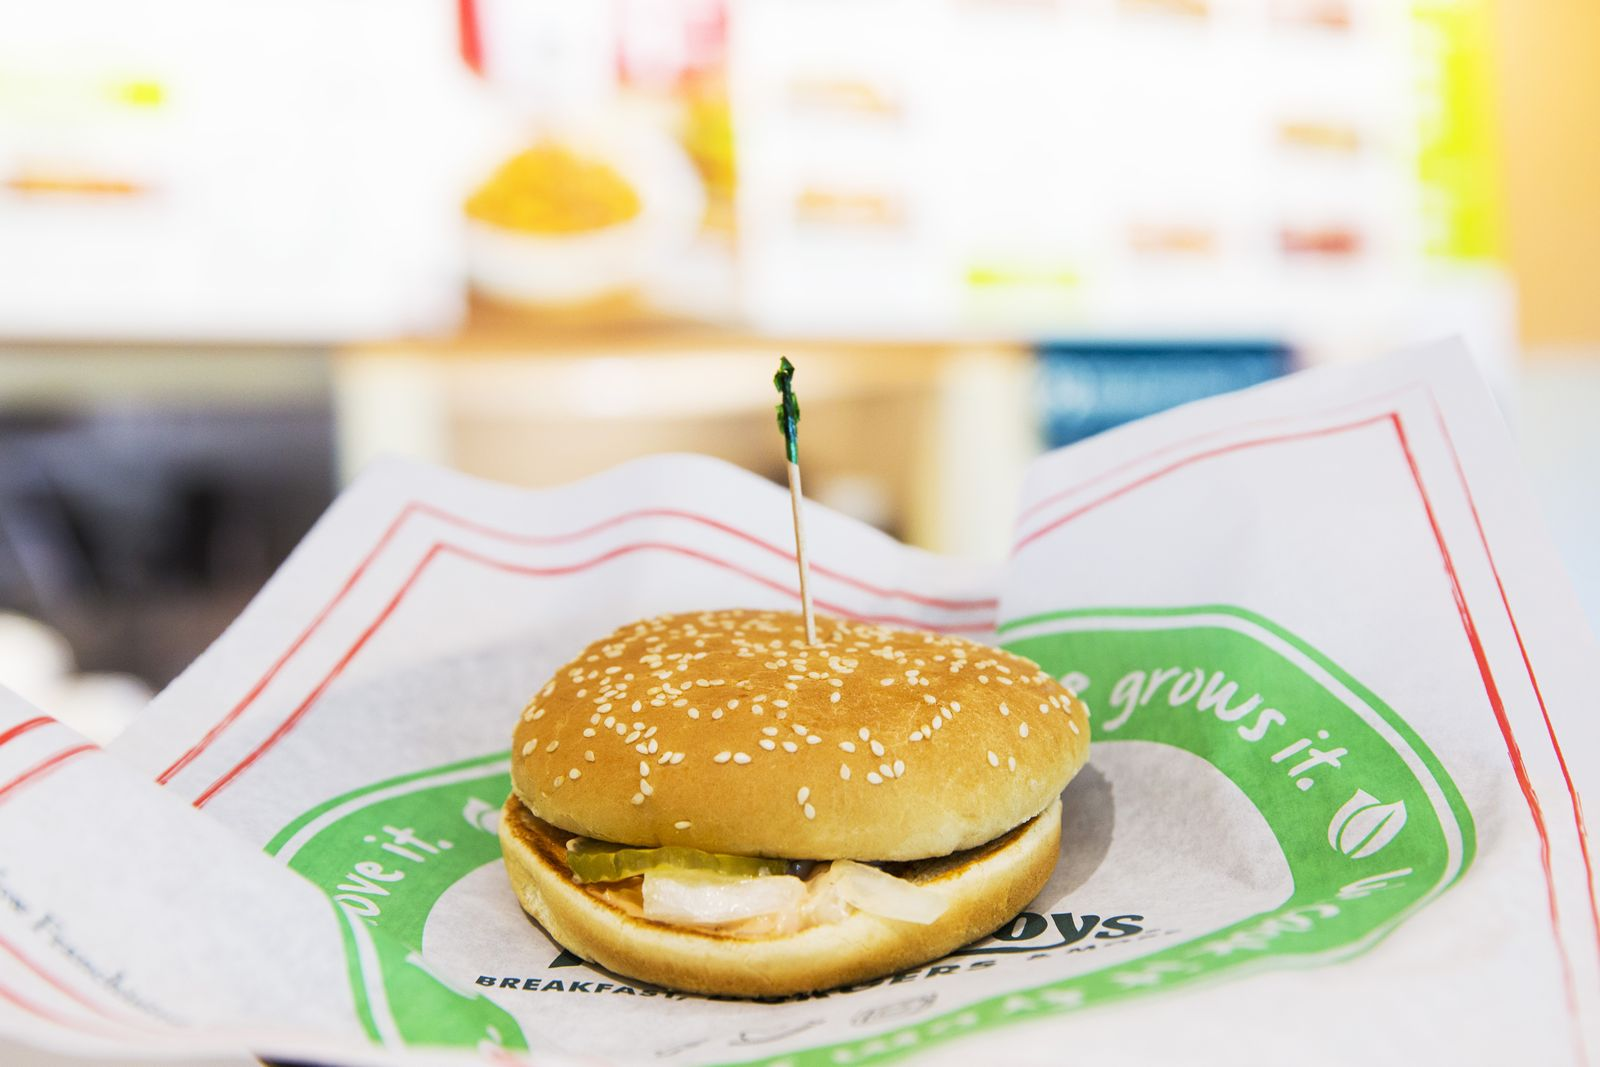 Farmer Boys, the farm fresh fast casual concept known for its award-winning burgers, has introduced a Burgerless Burger with simply pickles, onions, and Thousand Island dressing on a sesame seed bun.